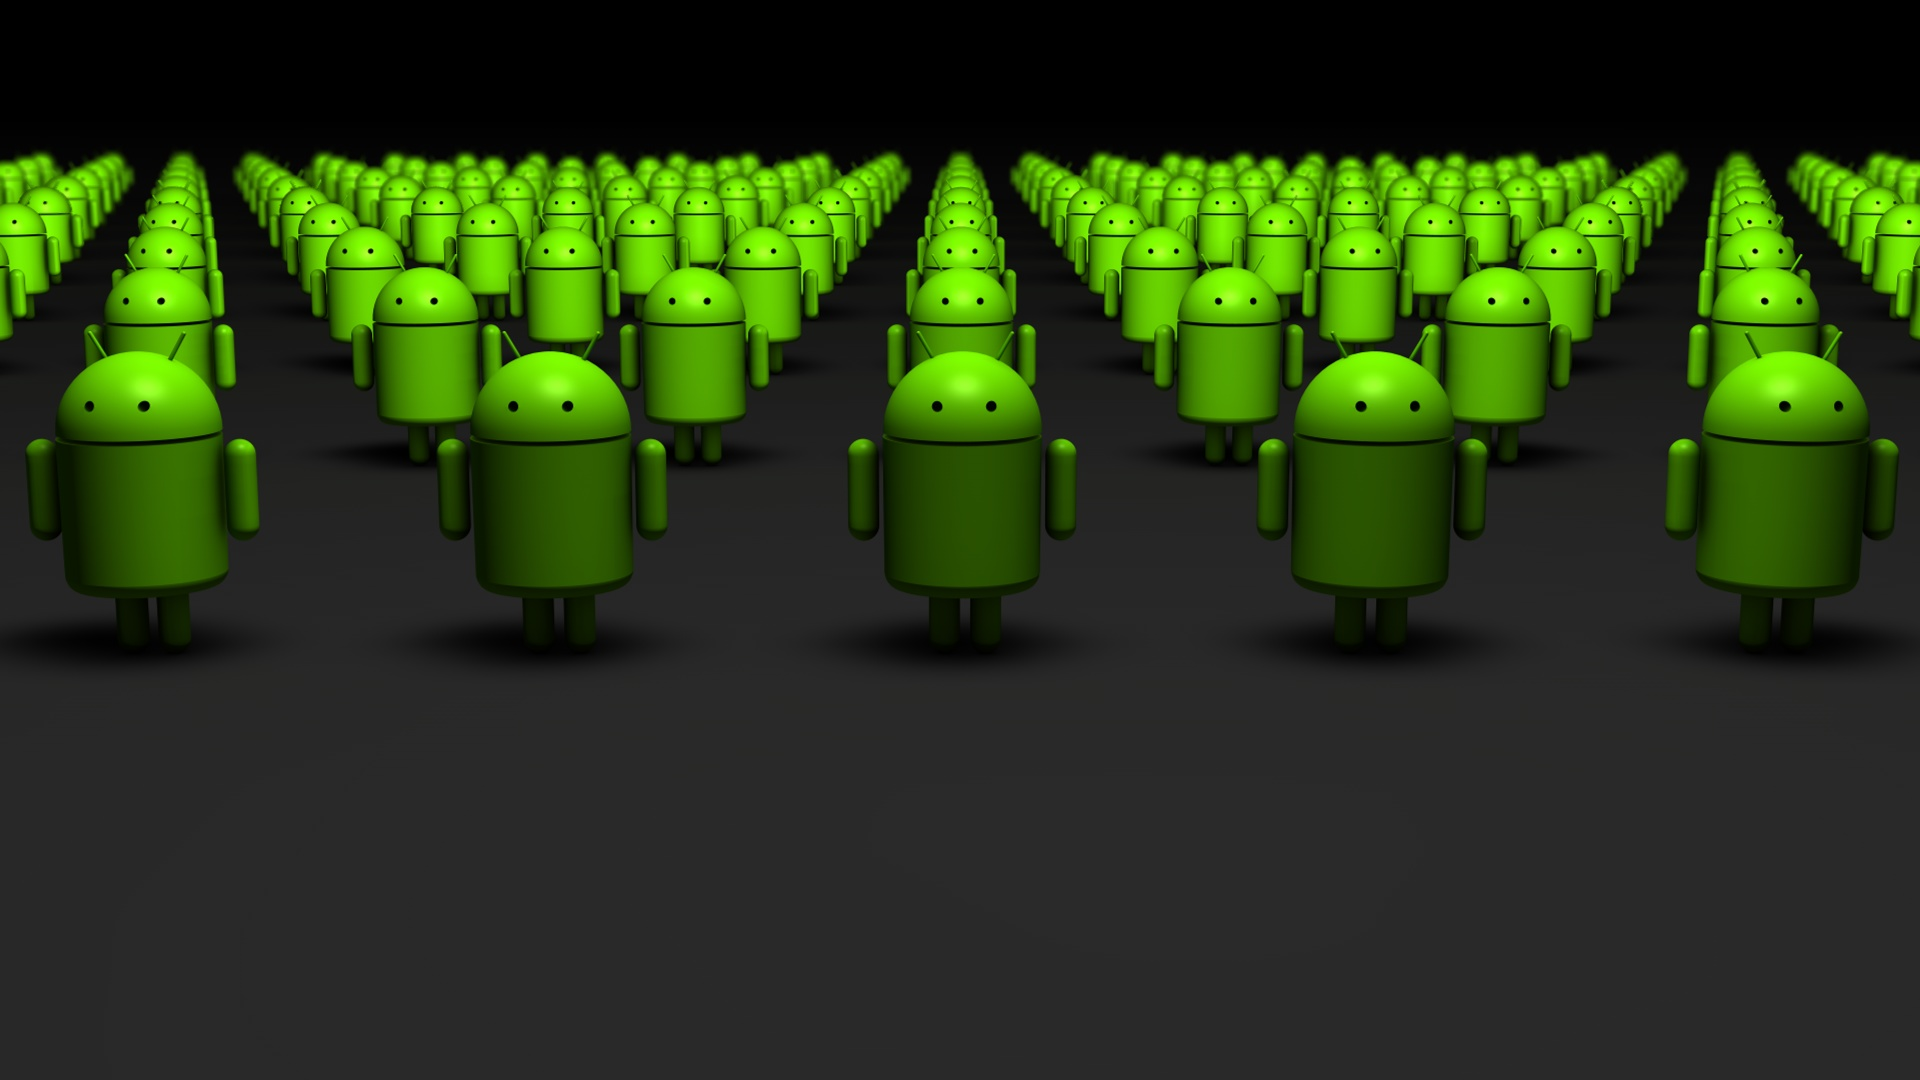 Wallpaper Hp Android 3d - Android Army , HD Wallpaper & Backgrounds